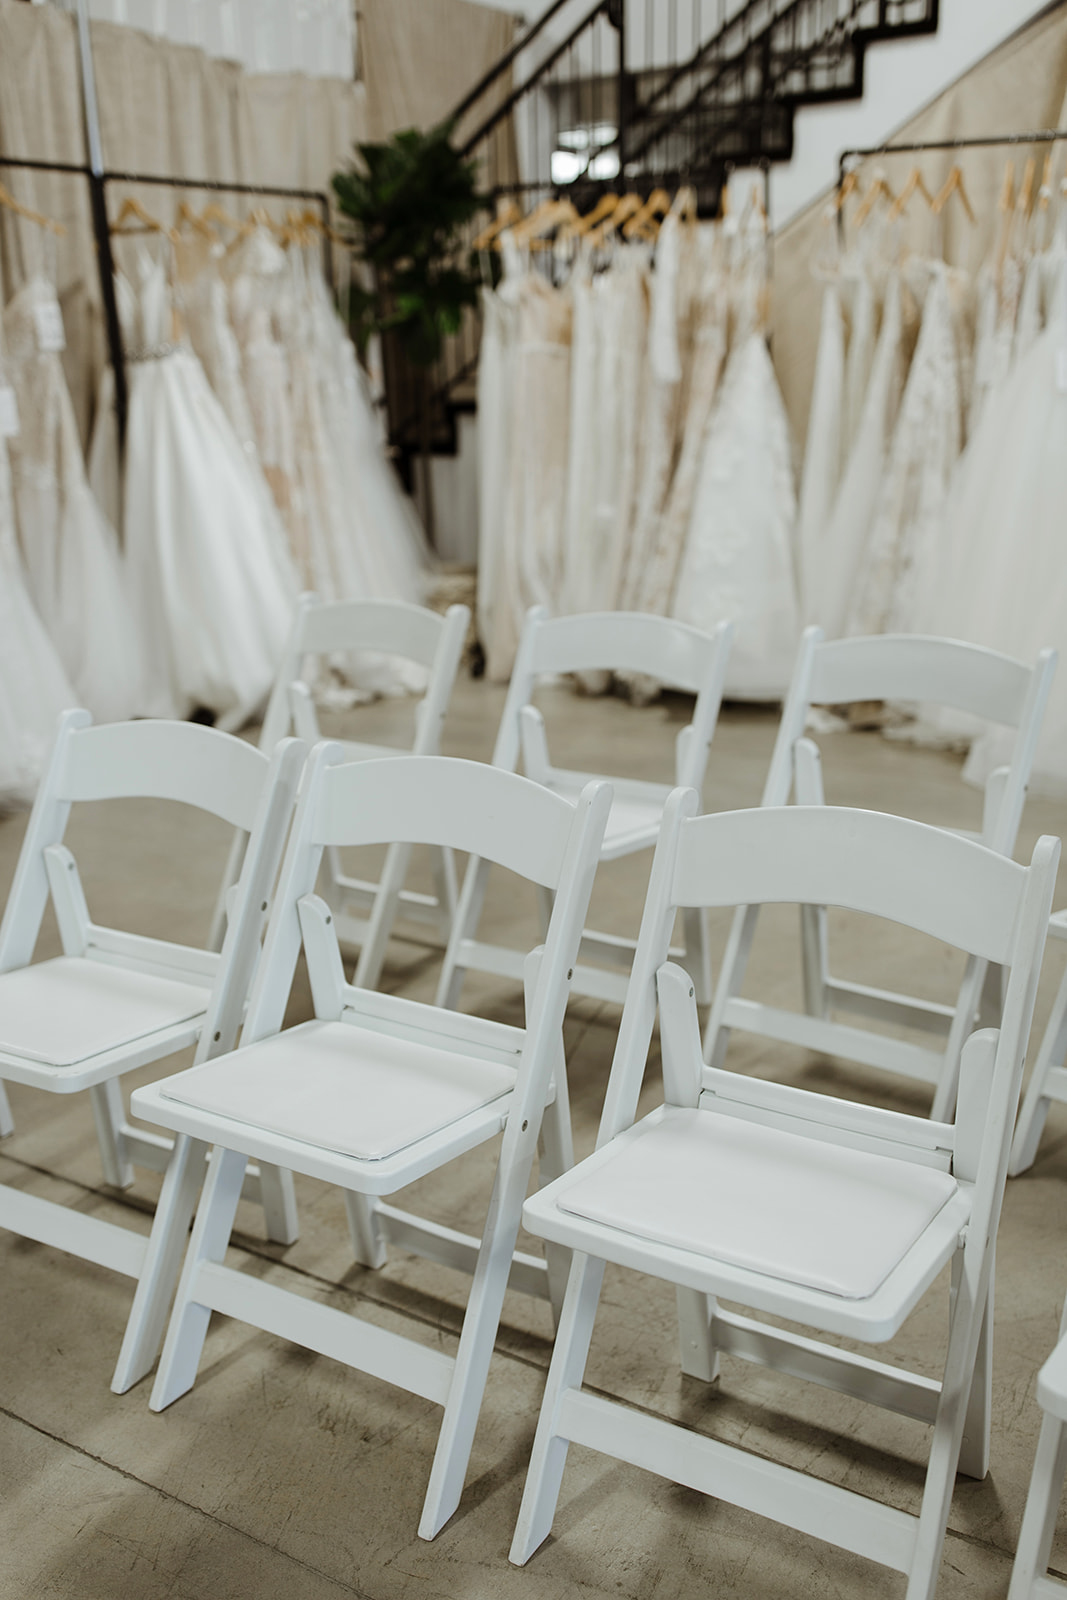 spokane wedding dress fashion show seating dresses white chairs